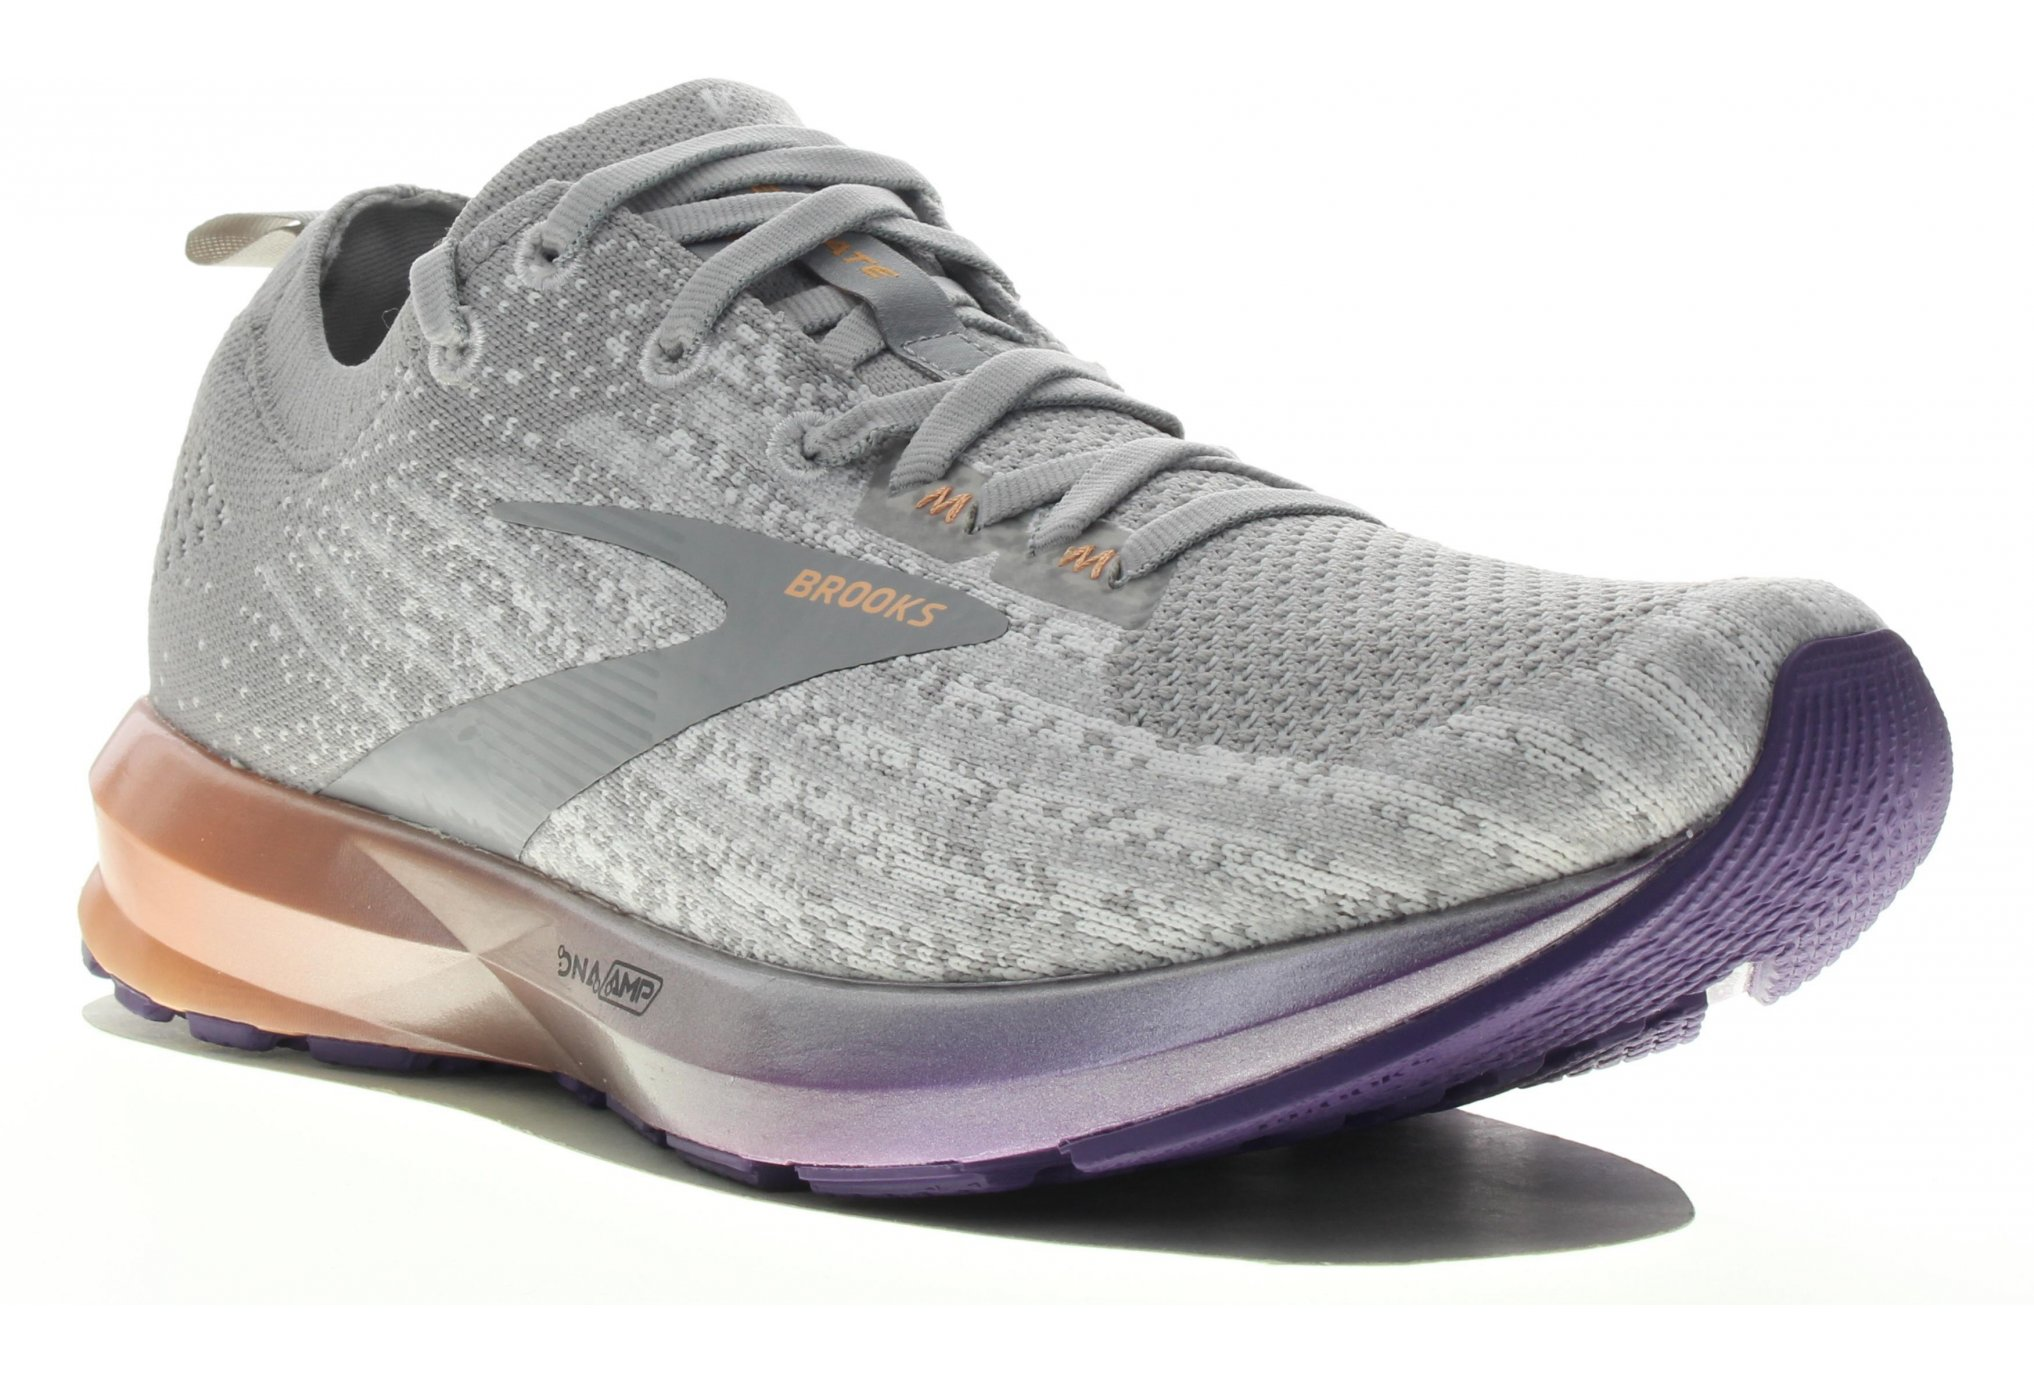 Brooks Levitate 3 Chaussures running femme